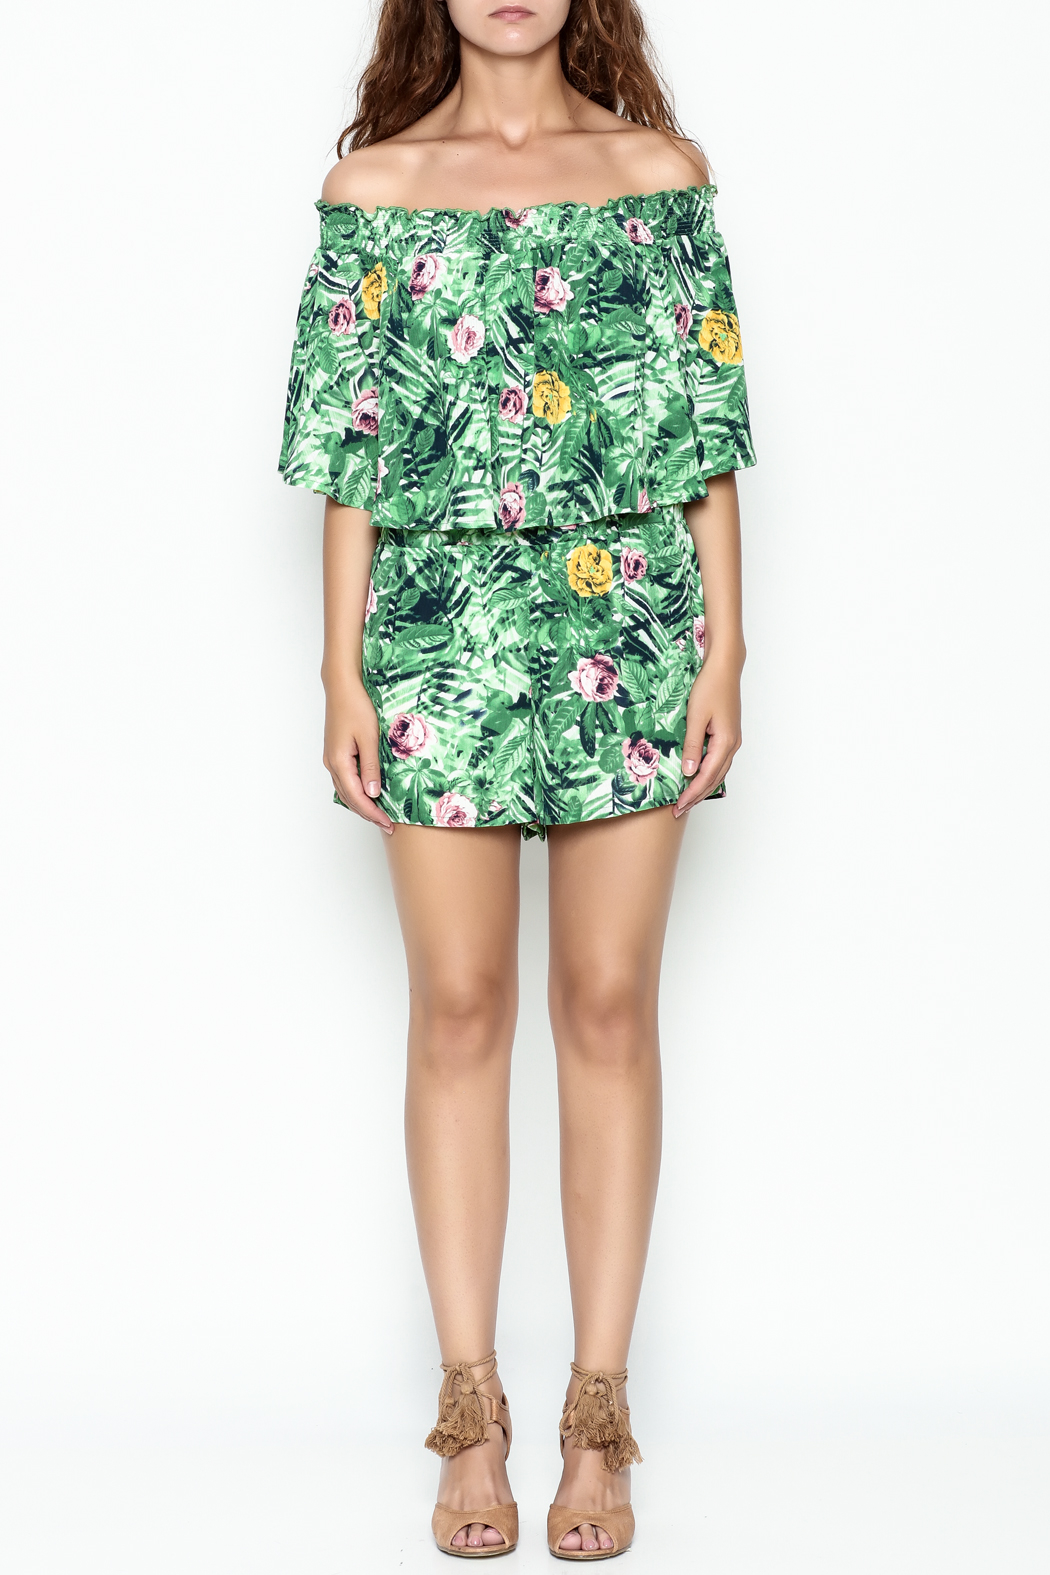 Izzy & Lola Tropical Newport Romper - Front Full Image